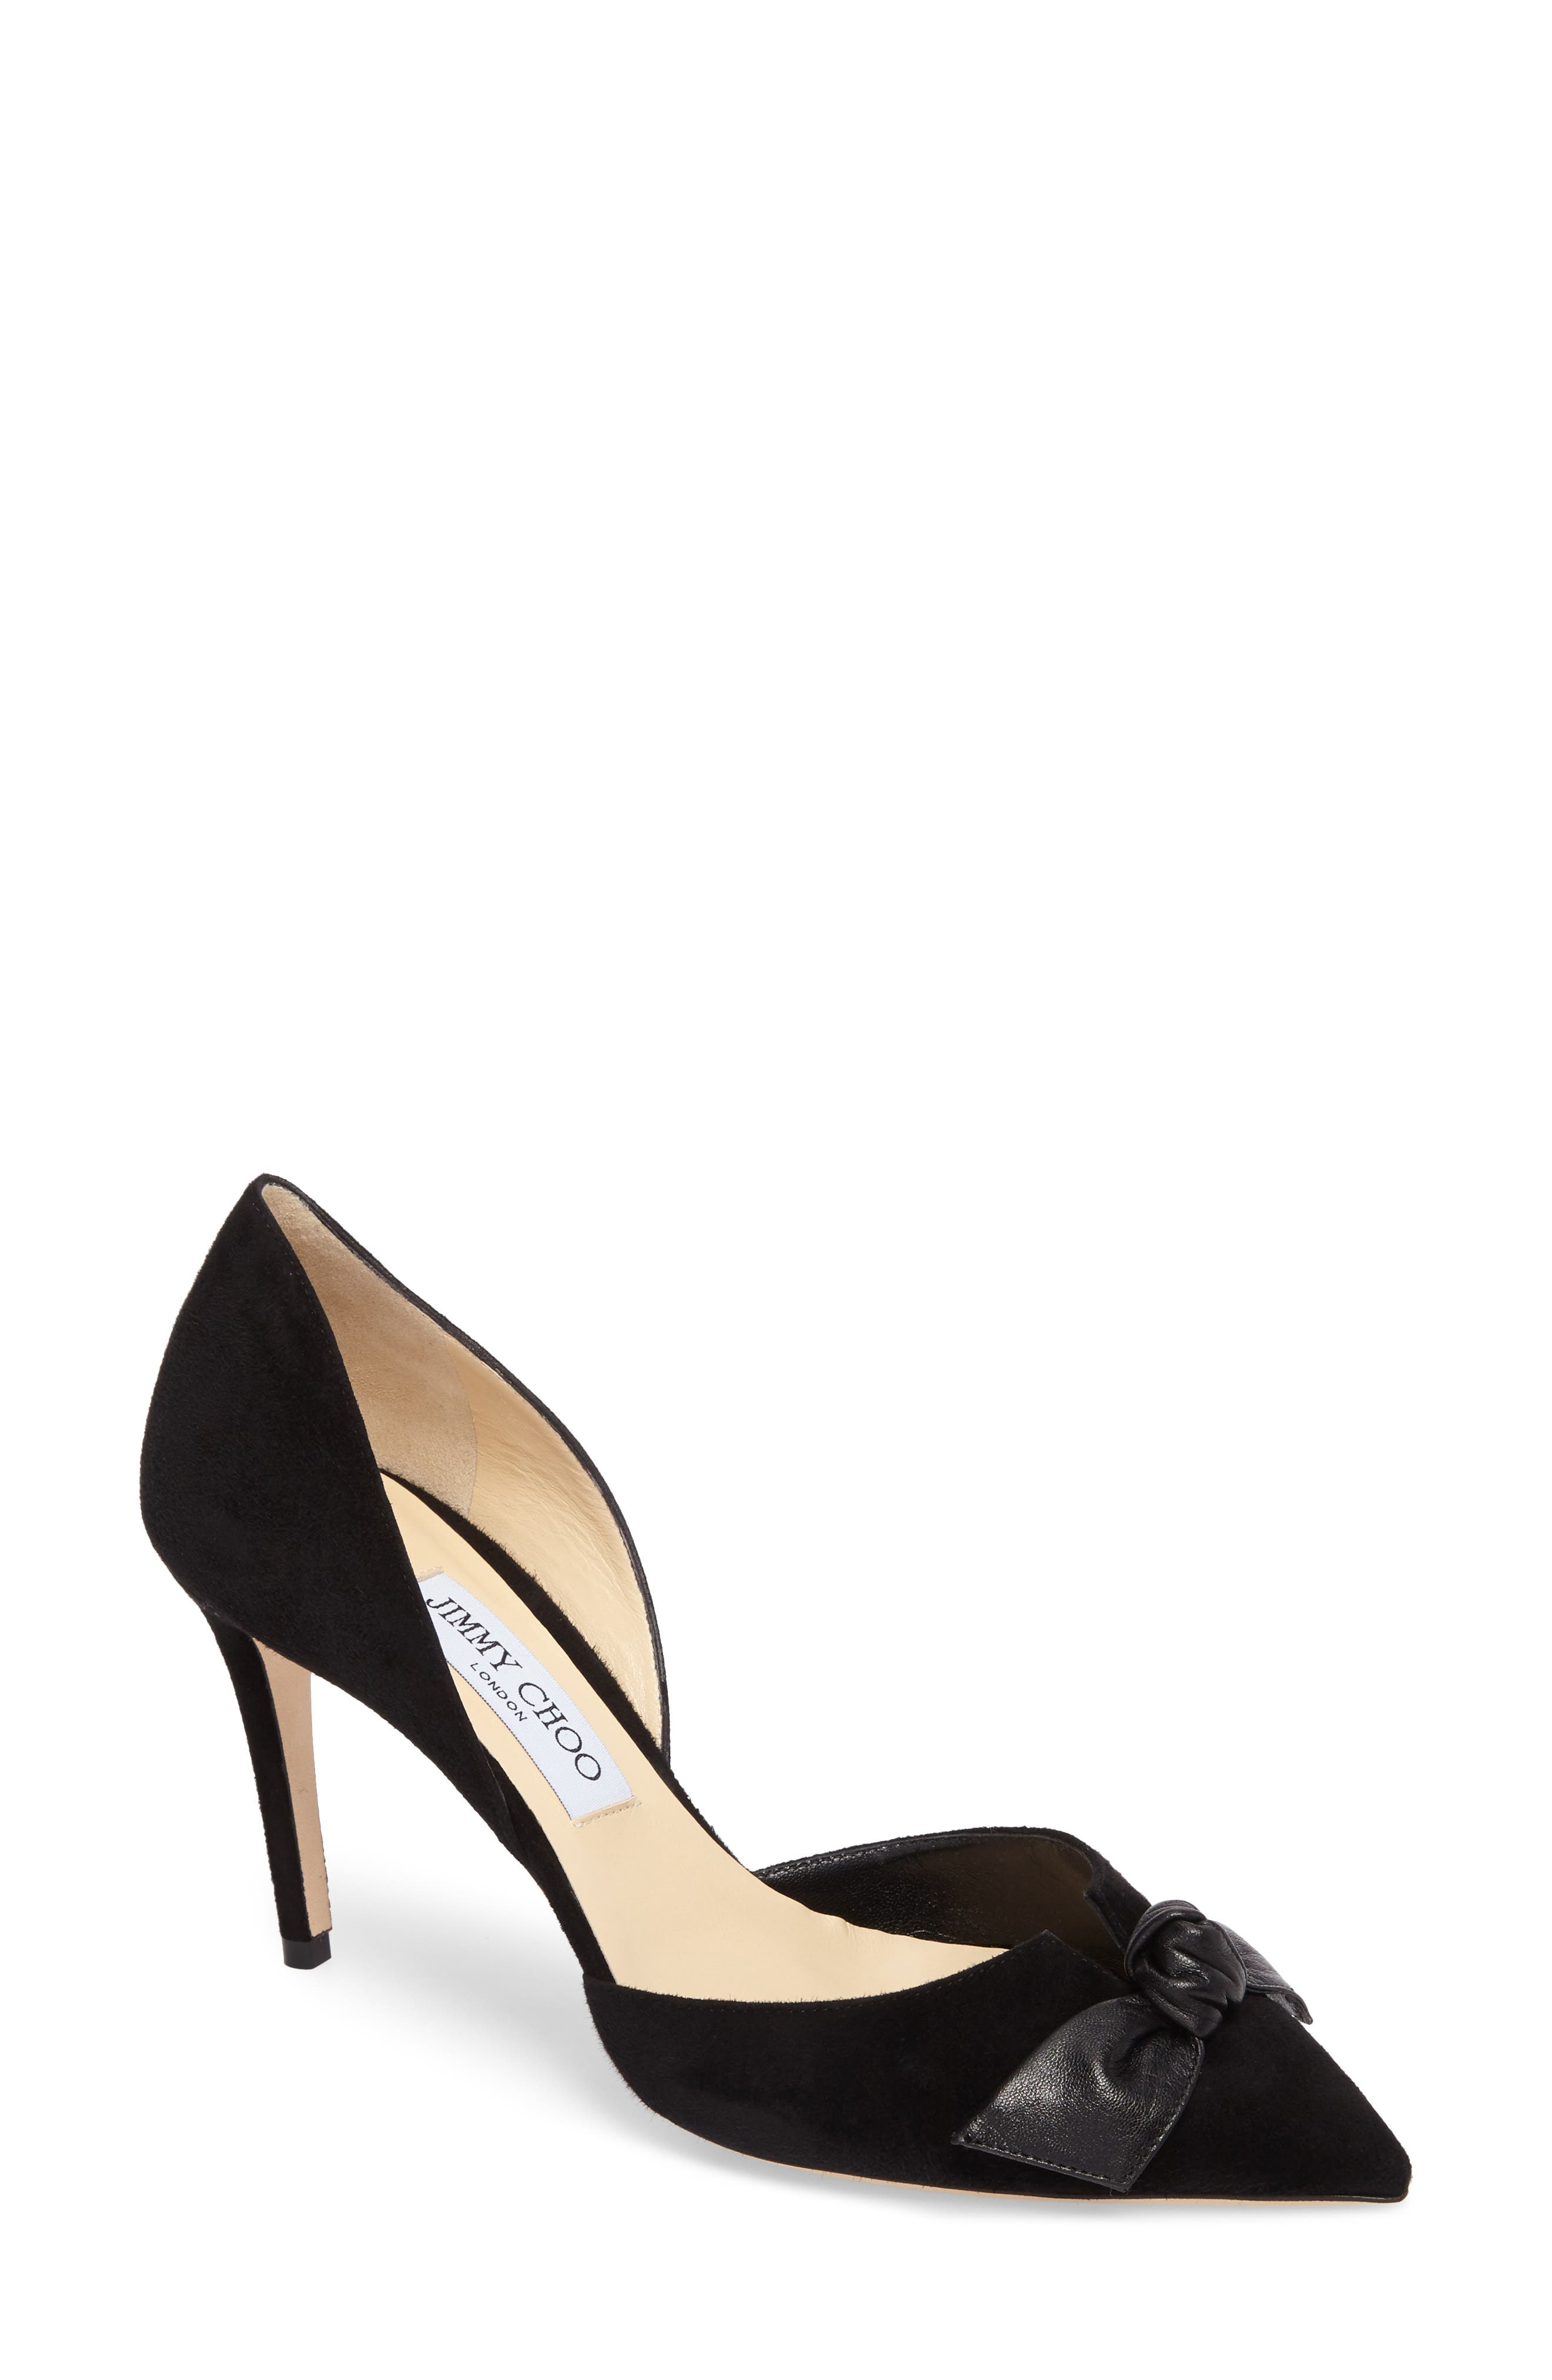 Twinkle Knotted Pump,                         Main,                         color, Black/ Black